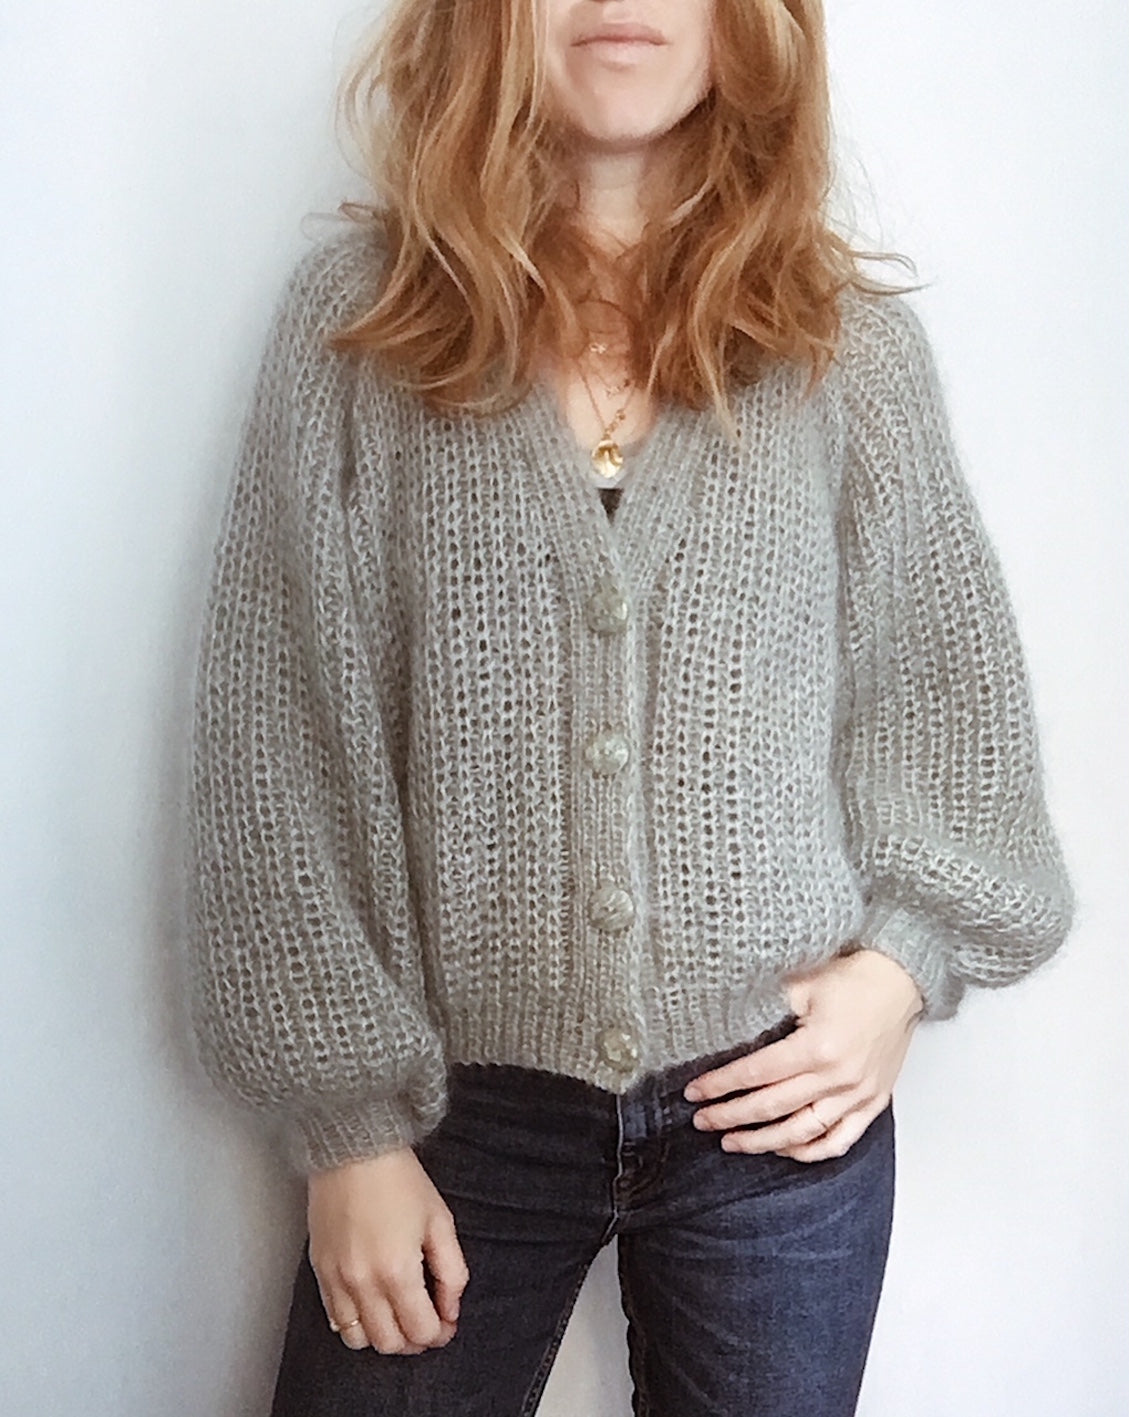 Cardigan No. 4 - ENG